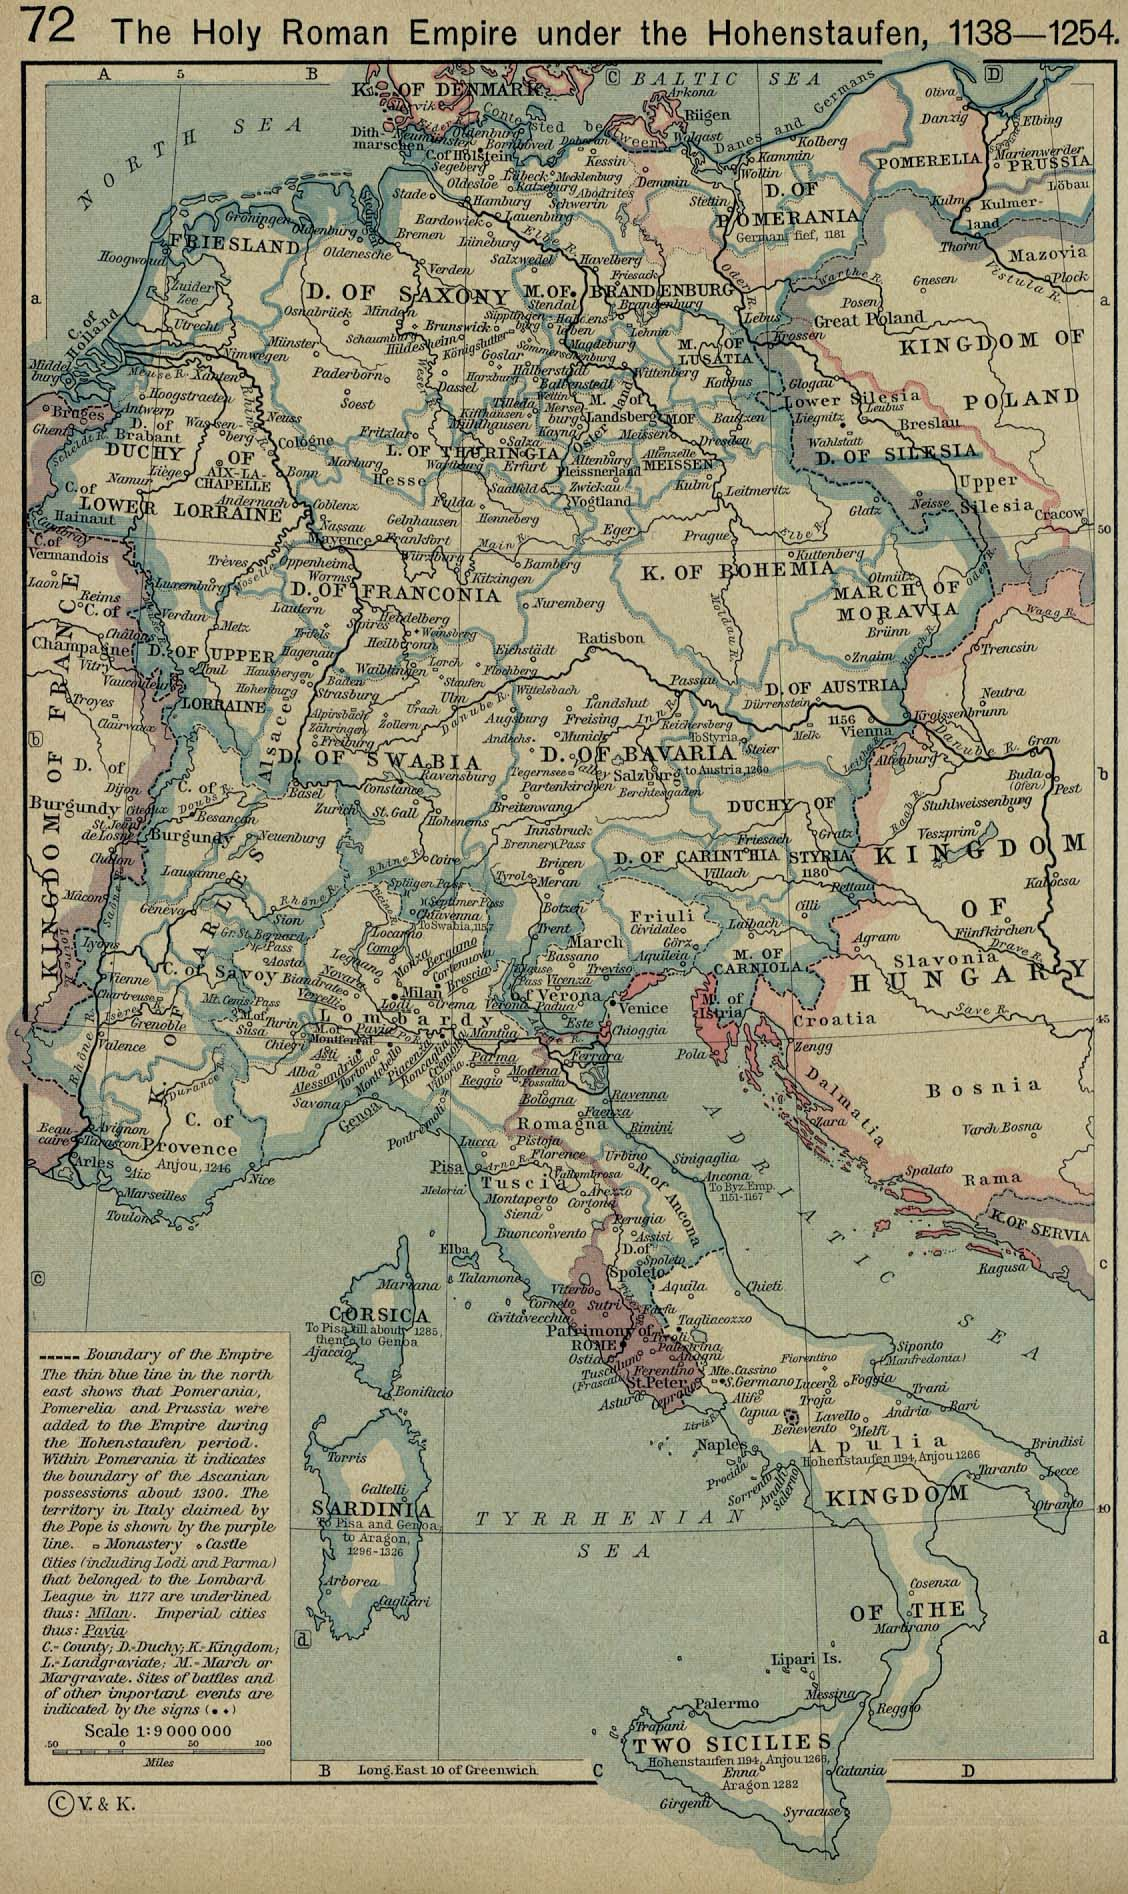 Holy Roman Empire Map 1000.Europe Historical Maps Perry Castaneda Map Collection Ut Library